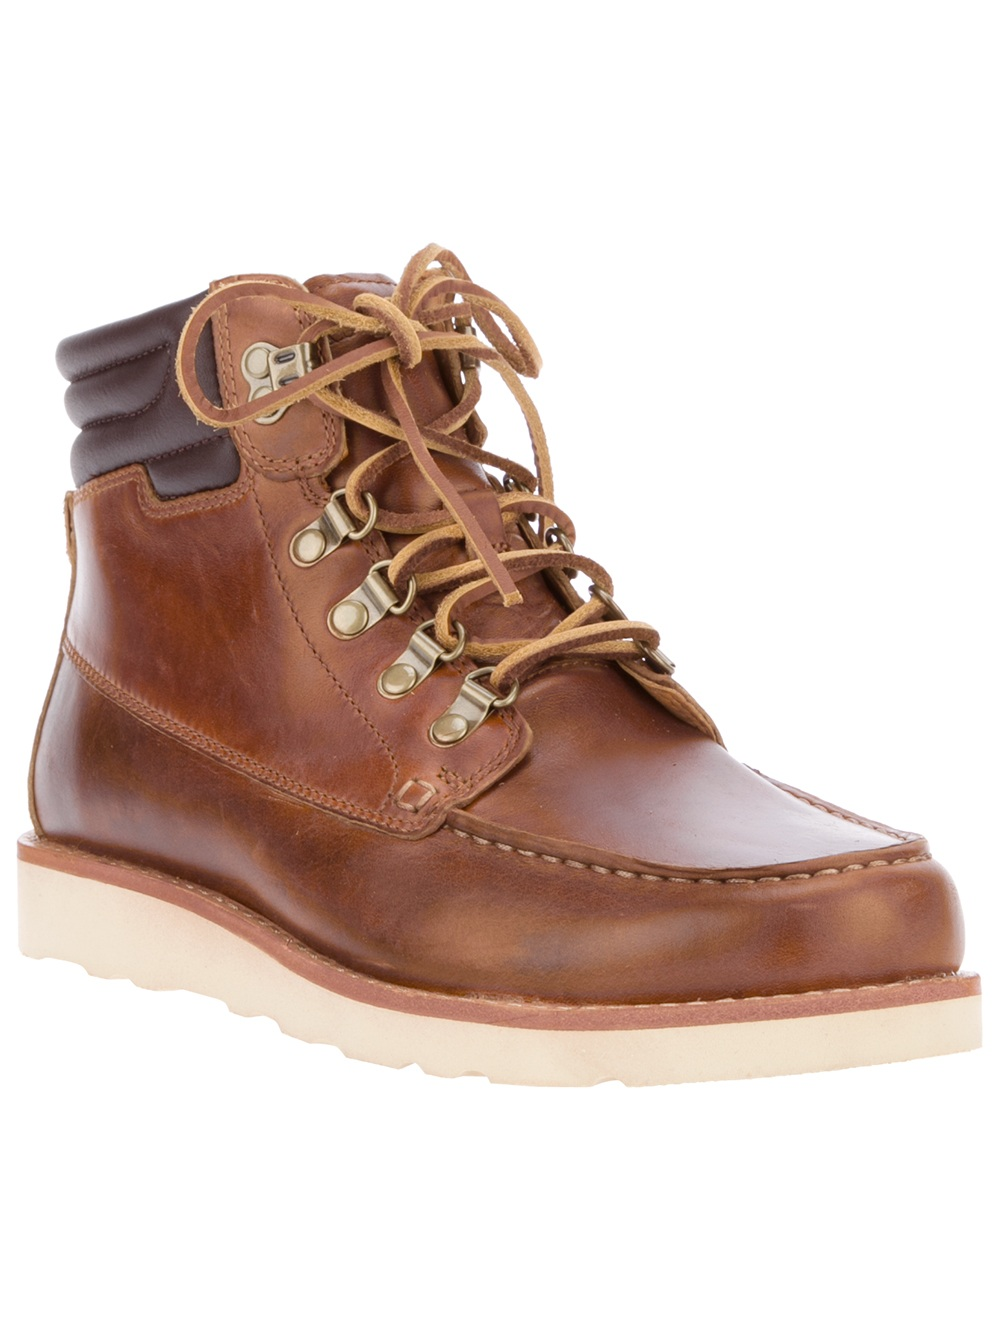 Timberland Abington Scout Leather Lace Up Boot in Brown ...